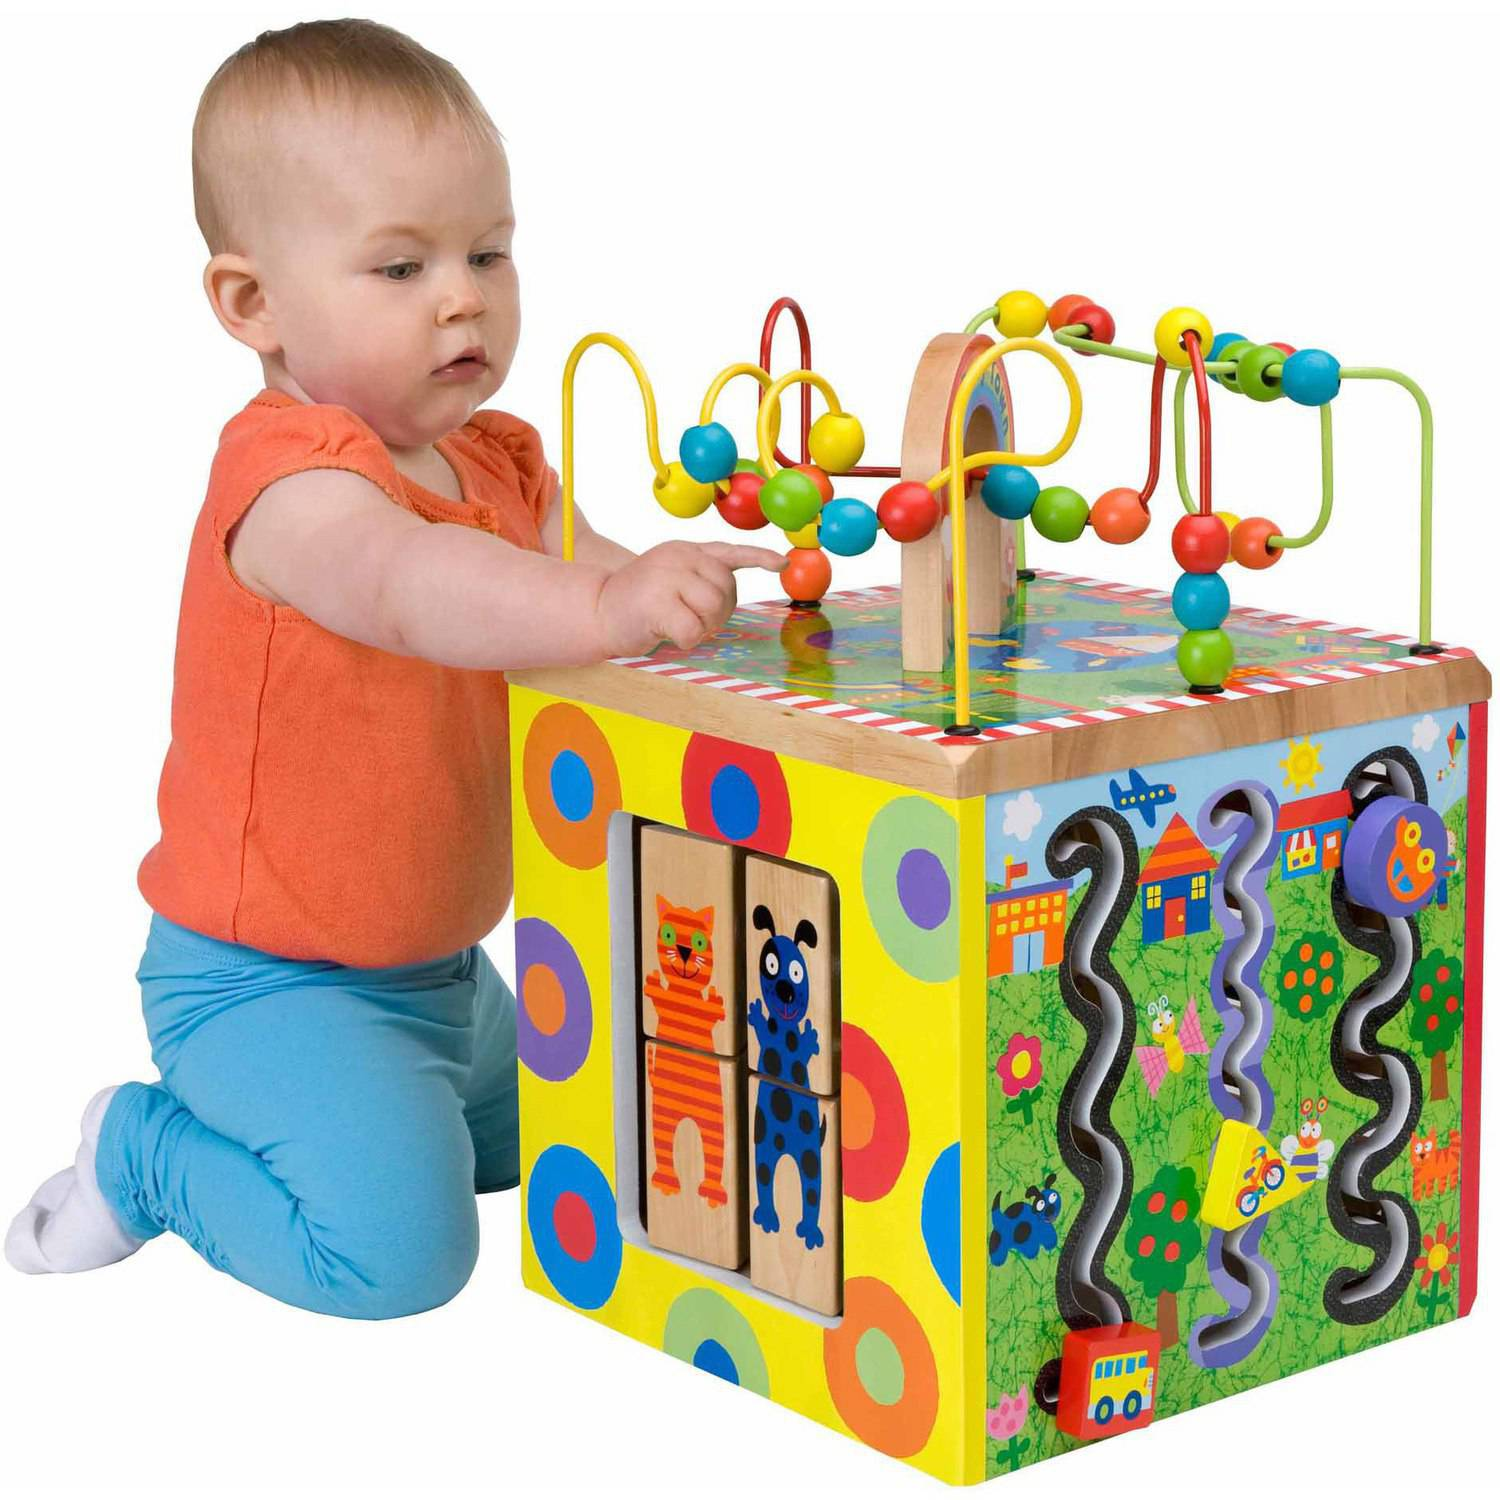 ALEX Toys ALEX Jr My Busy Town Wooden Activity Cube Walmart